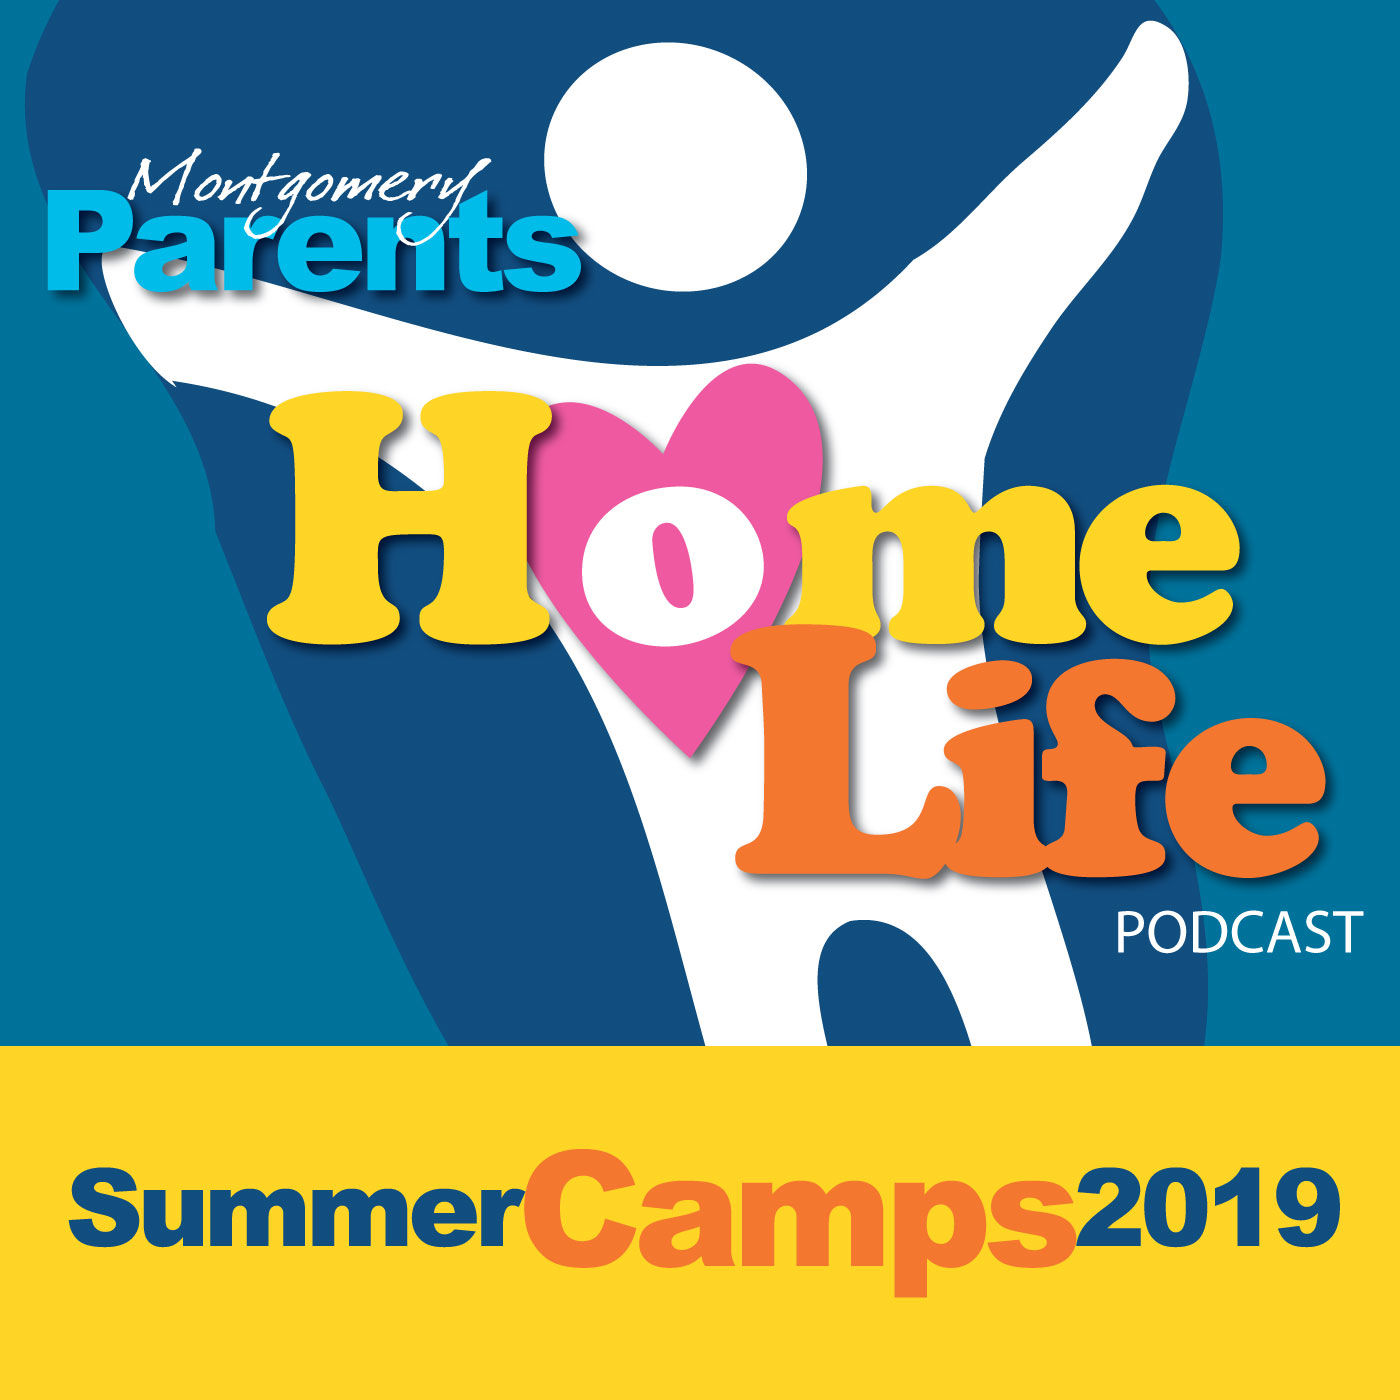 The Best Solution for Summer Boredom or Craziness is Summer Camps!